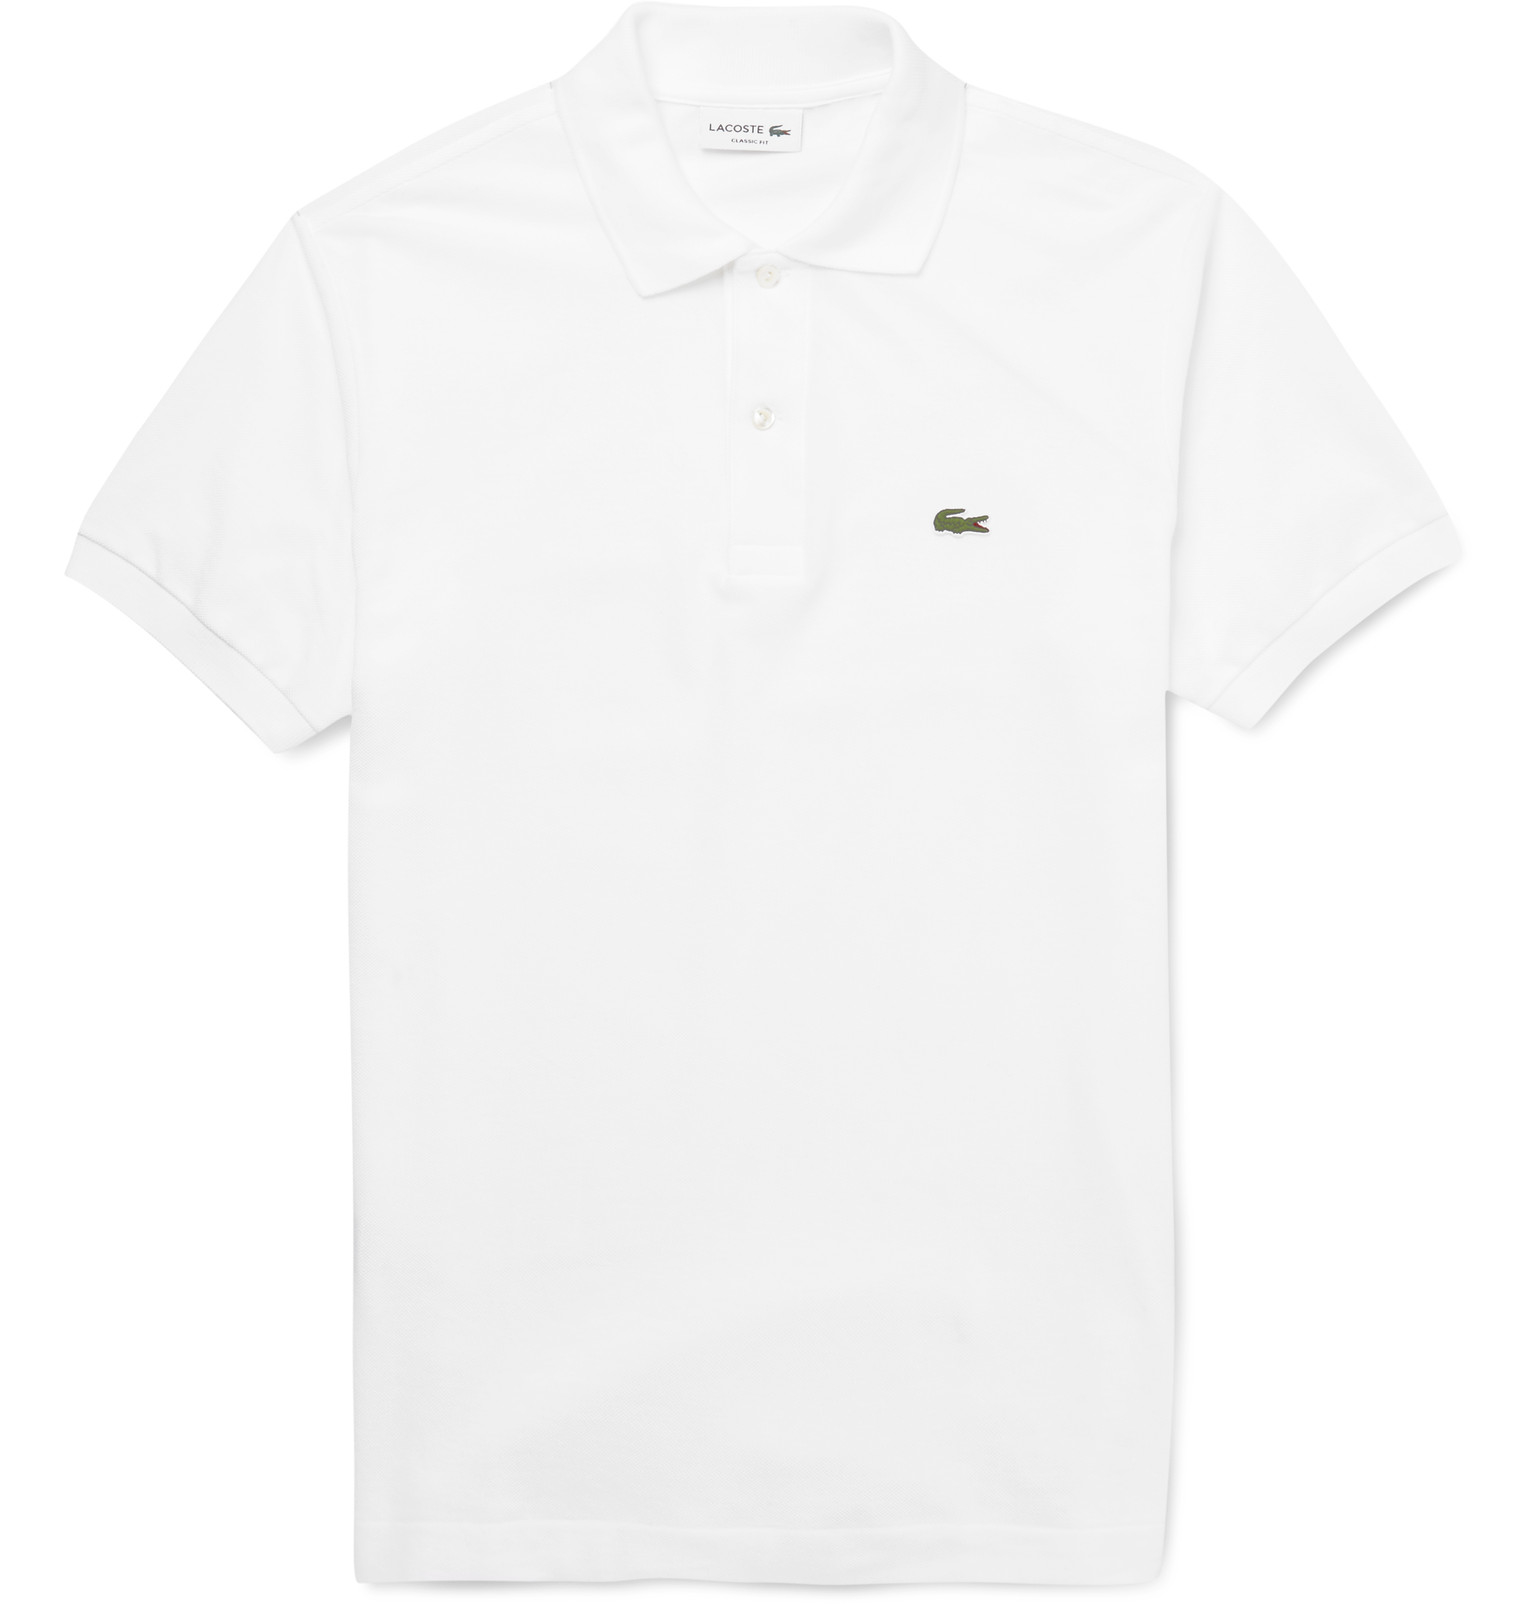 lacoste cotton piqu polo shirt in white for men lyst. Black Bedroom Furniture Sets. Home Design Ideas